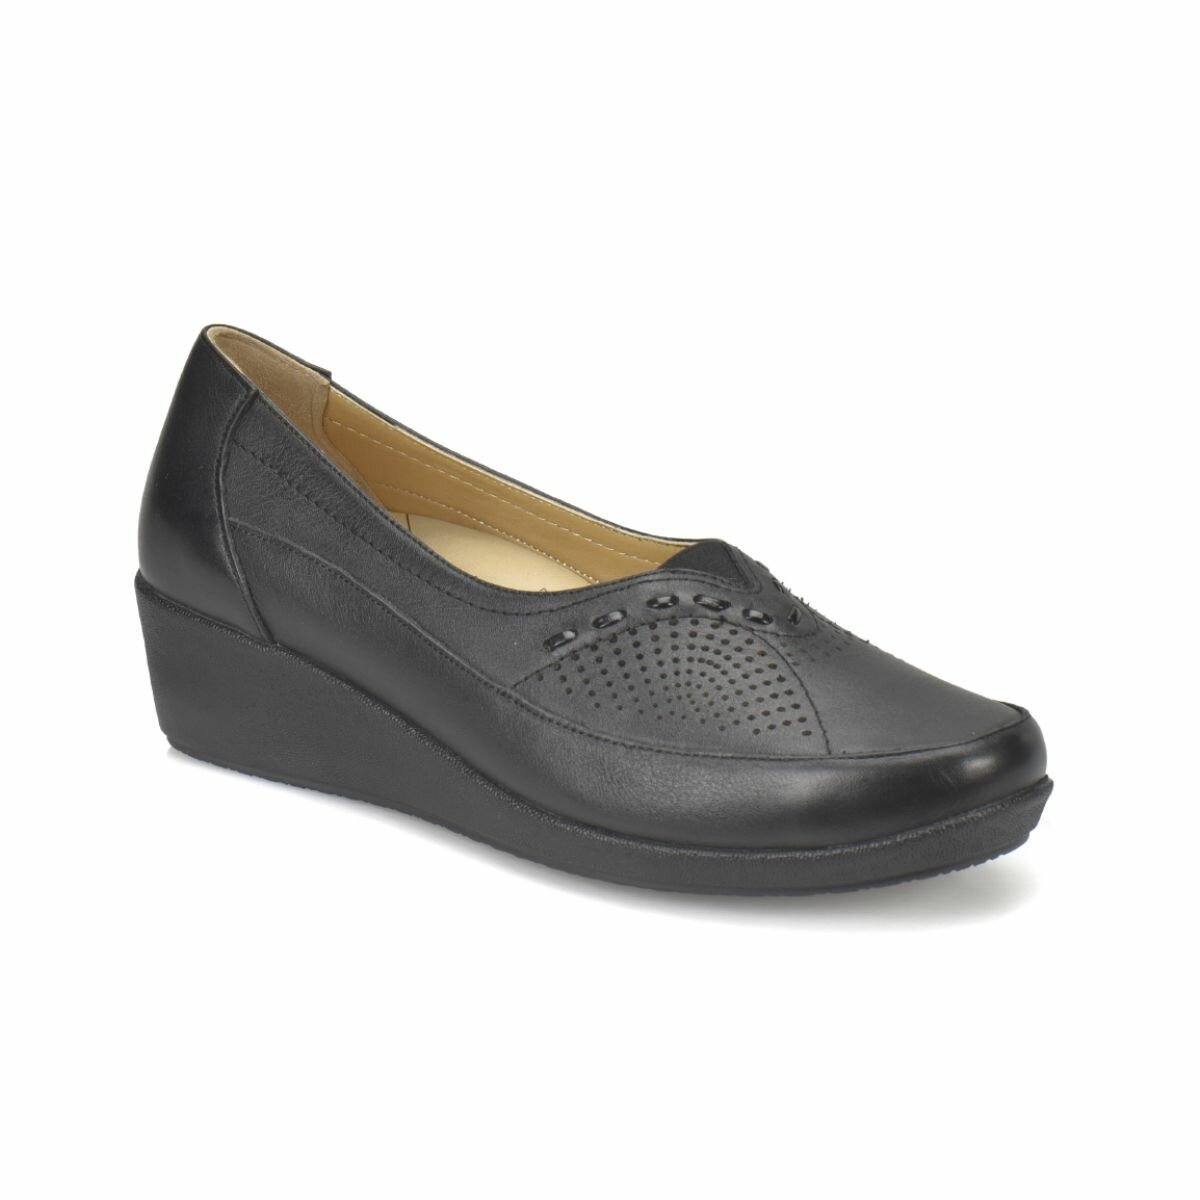 FLO 81. 111125.Z Black Women Shoes Polaris 5 Point